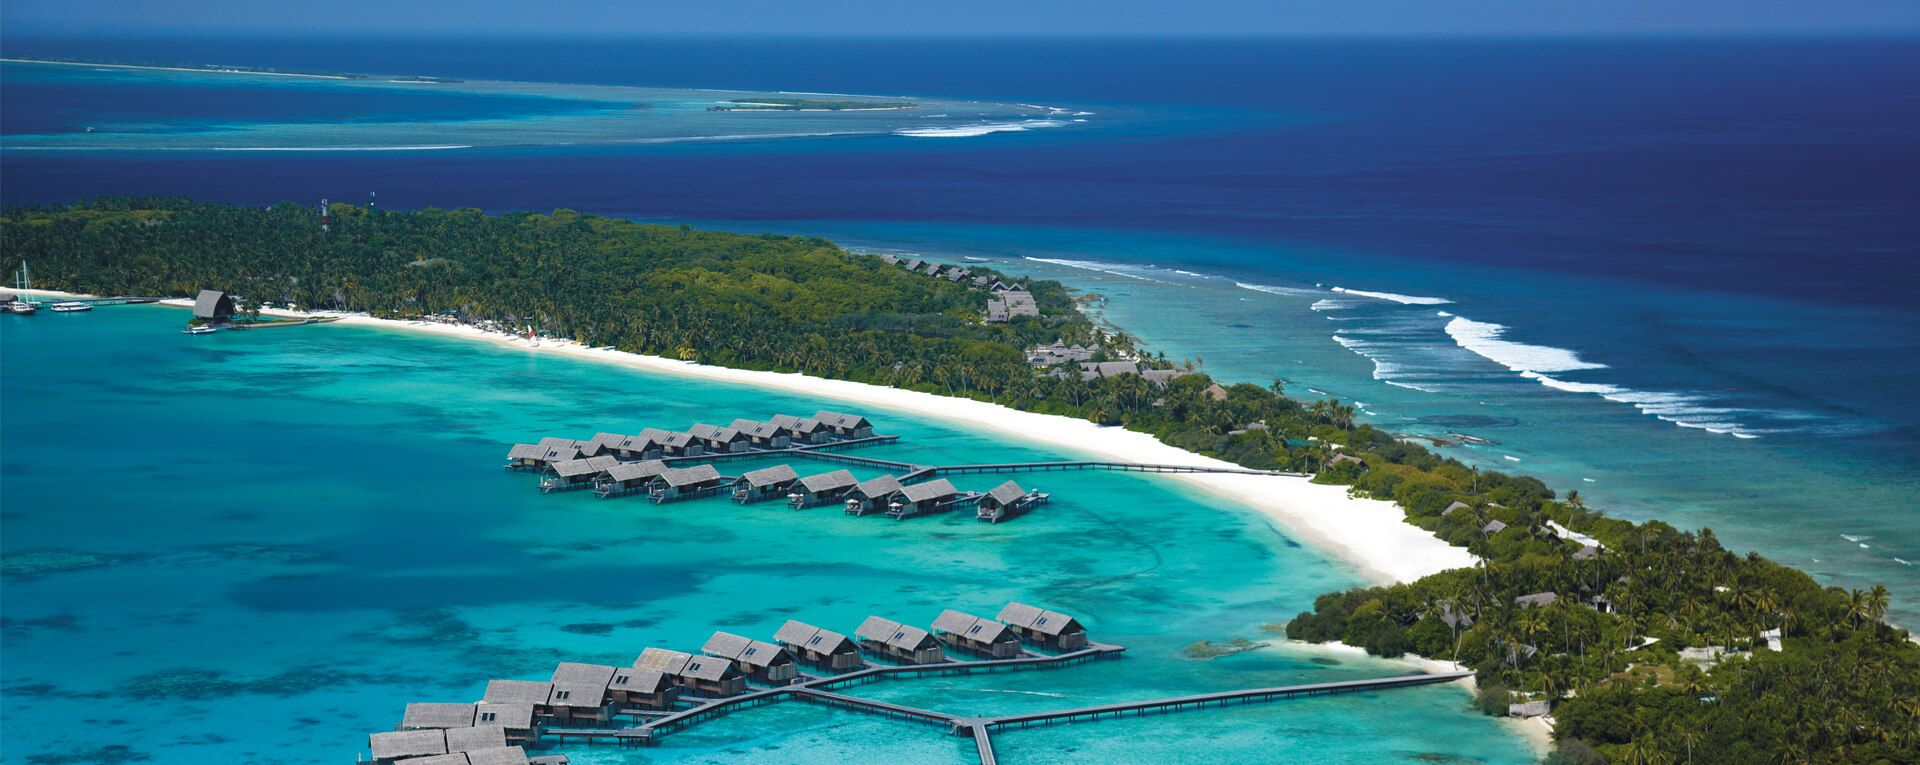 Shangri-La's Villingili Resort & Spa, Maldives